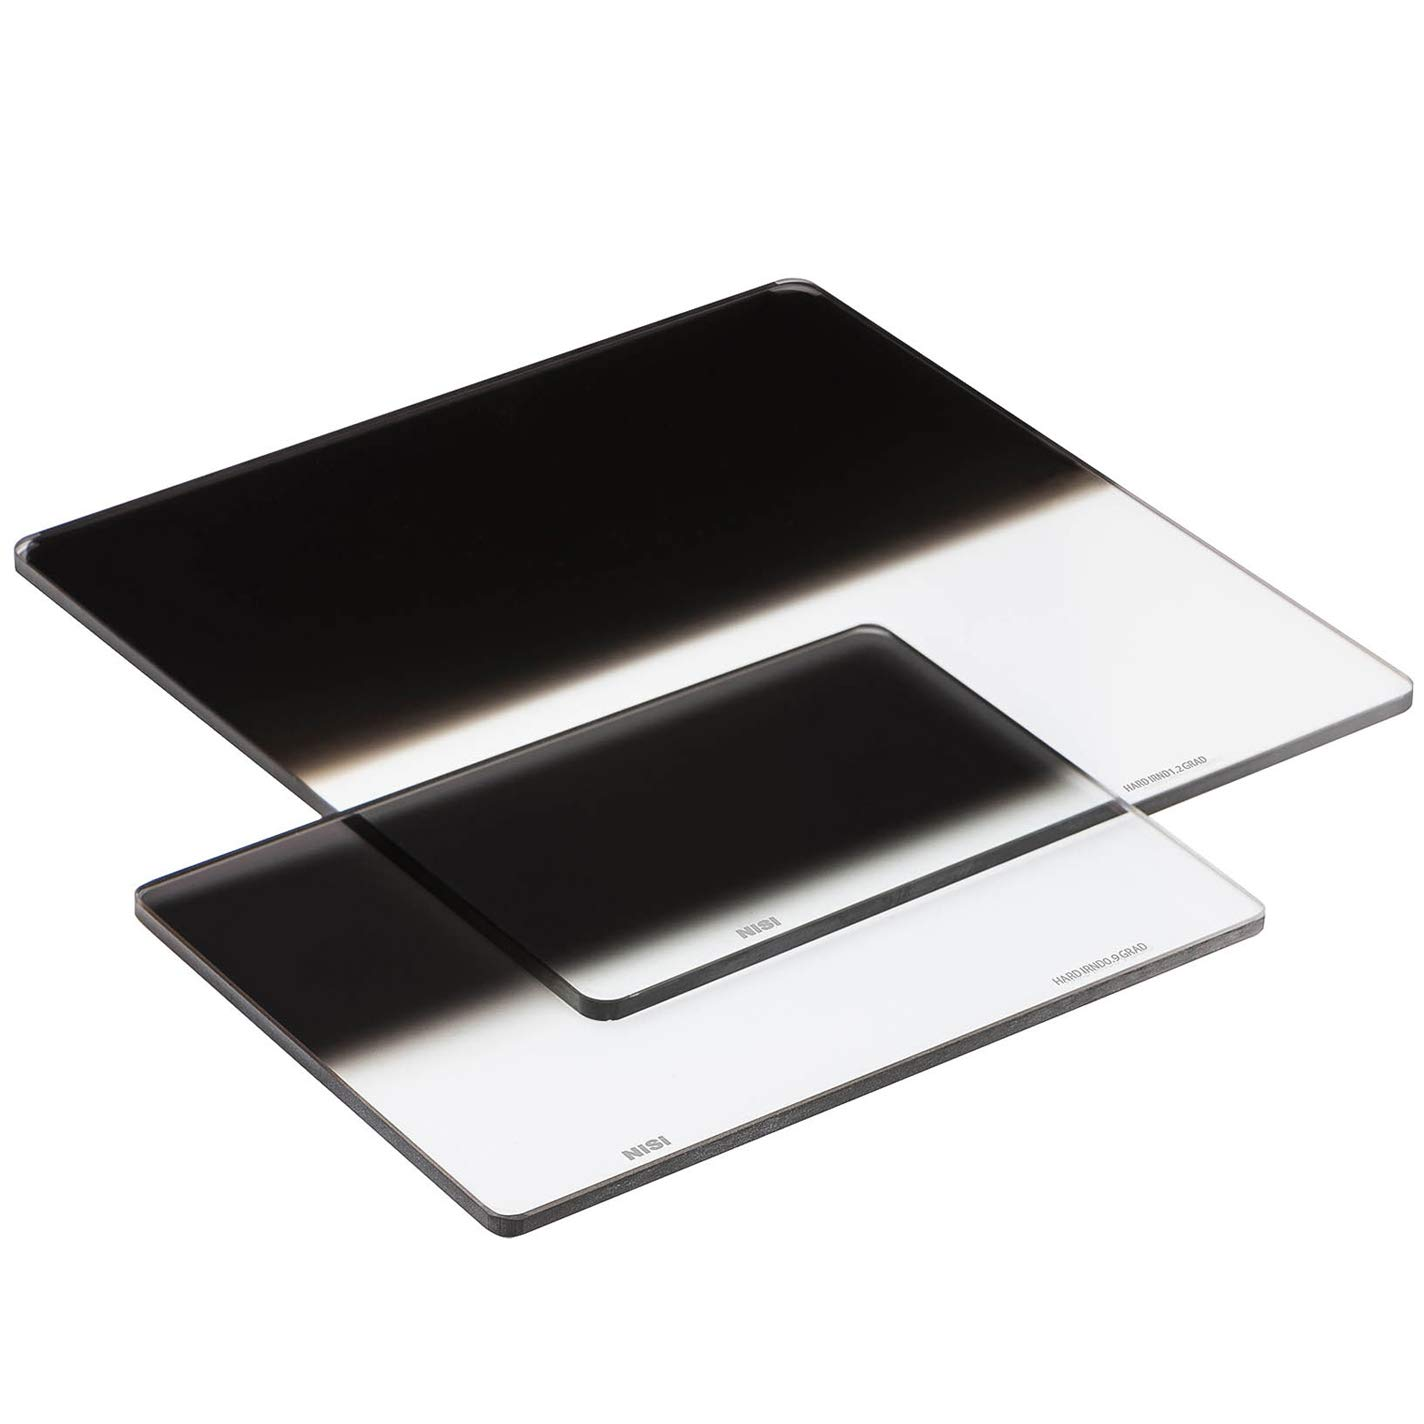 NiSi NIC-4565-HGND0.3 Hard Graduated 4 X 5.65 Glass Filter from Ikan, Black by NiSi